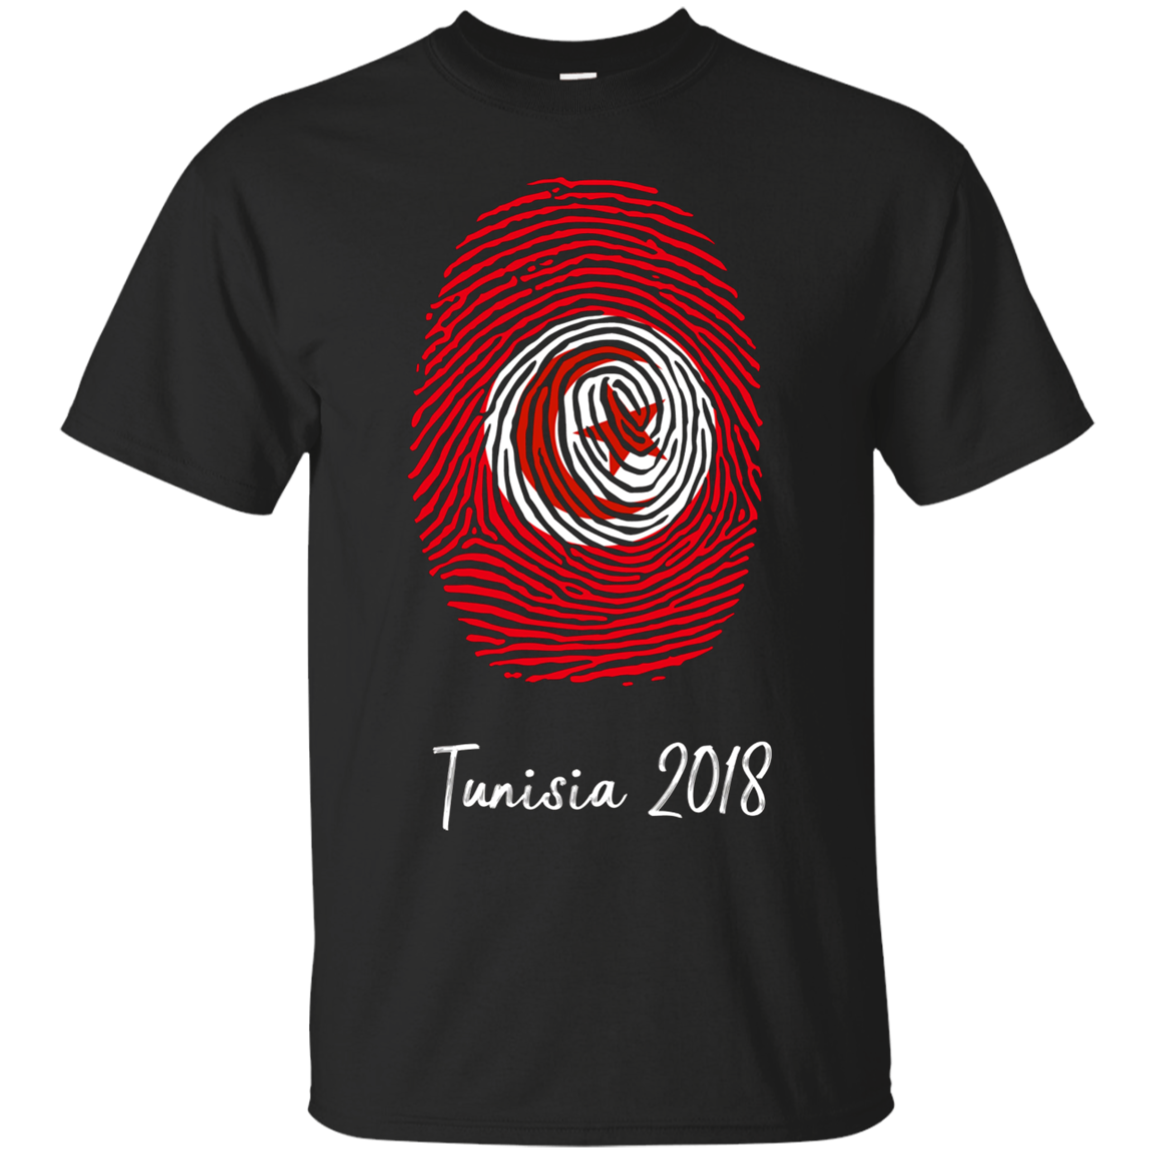 Tunisia Shirt 2018 Thumbprint Soccer Flag Design